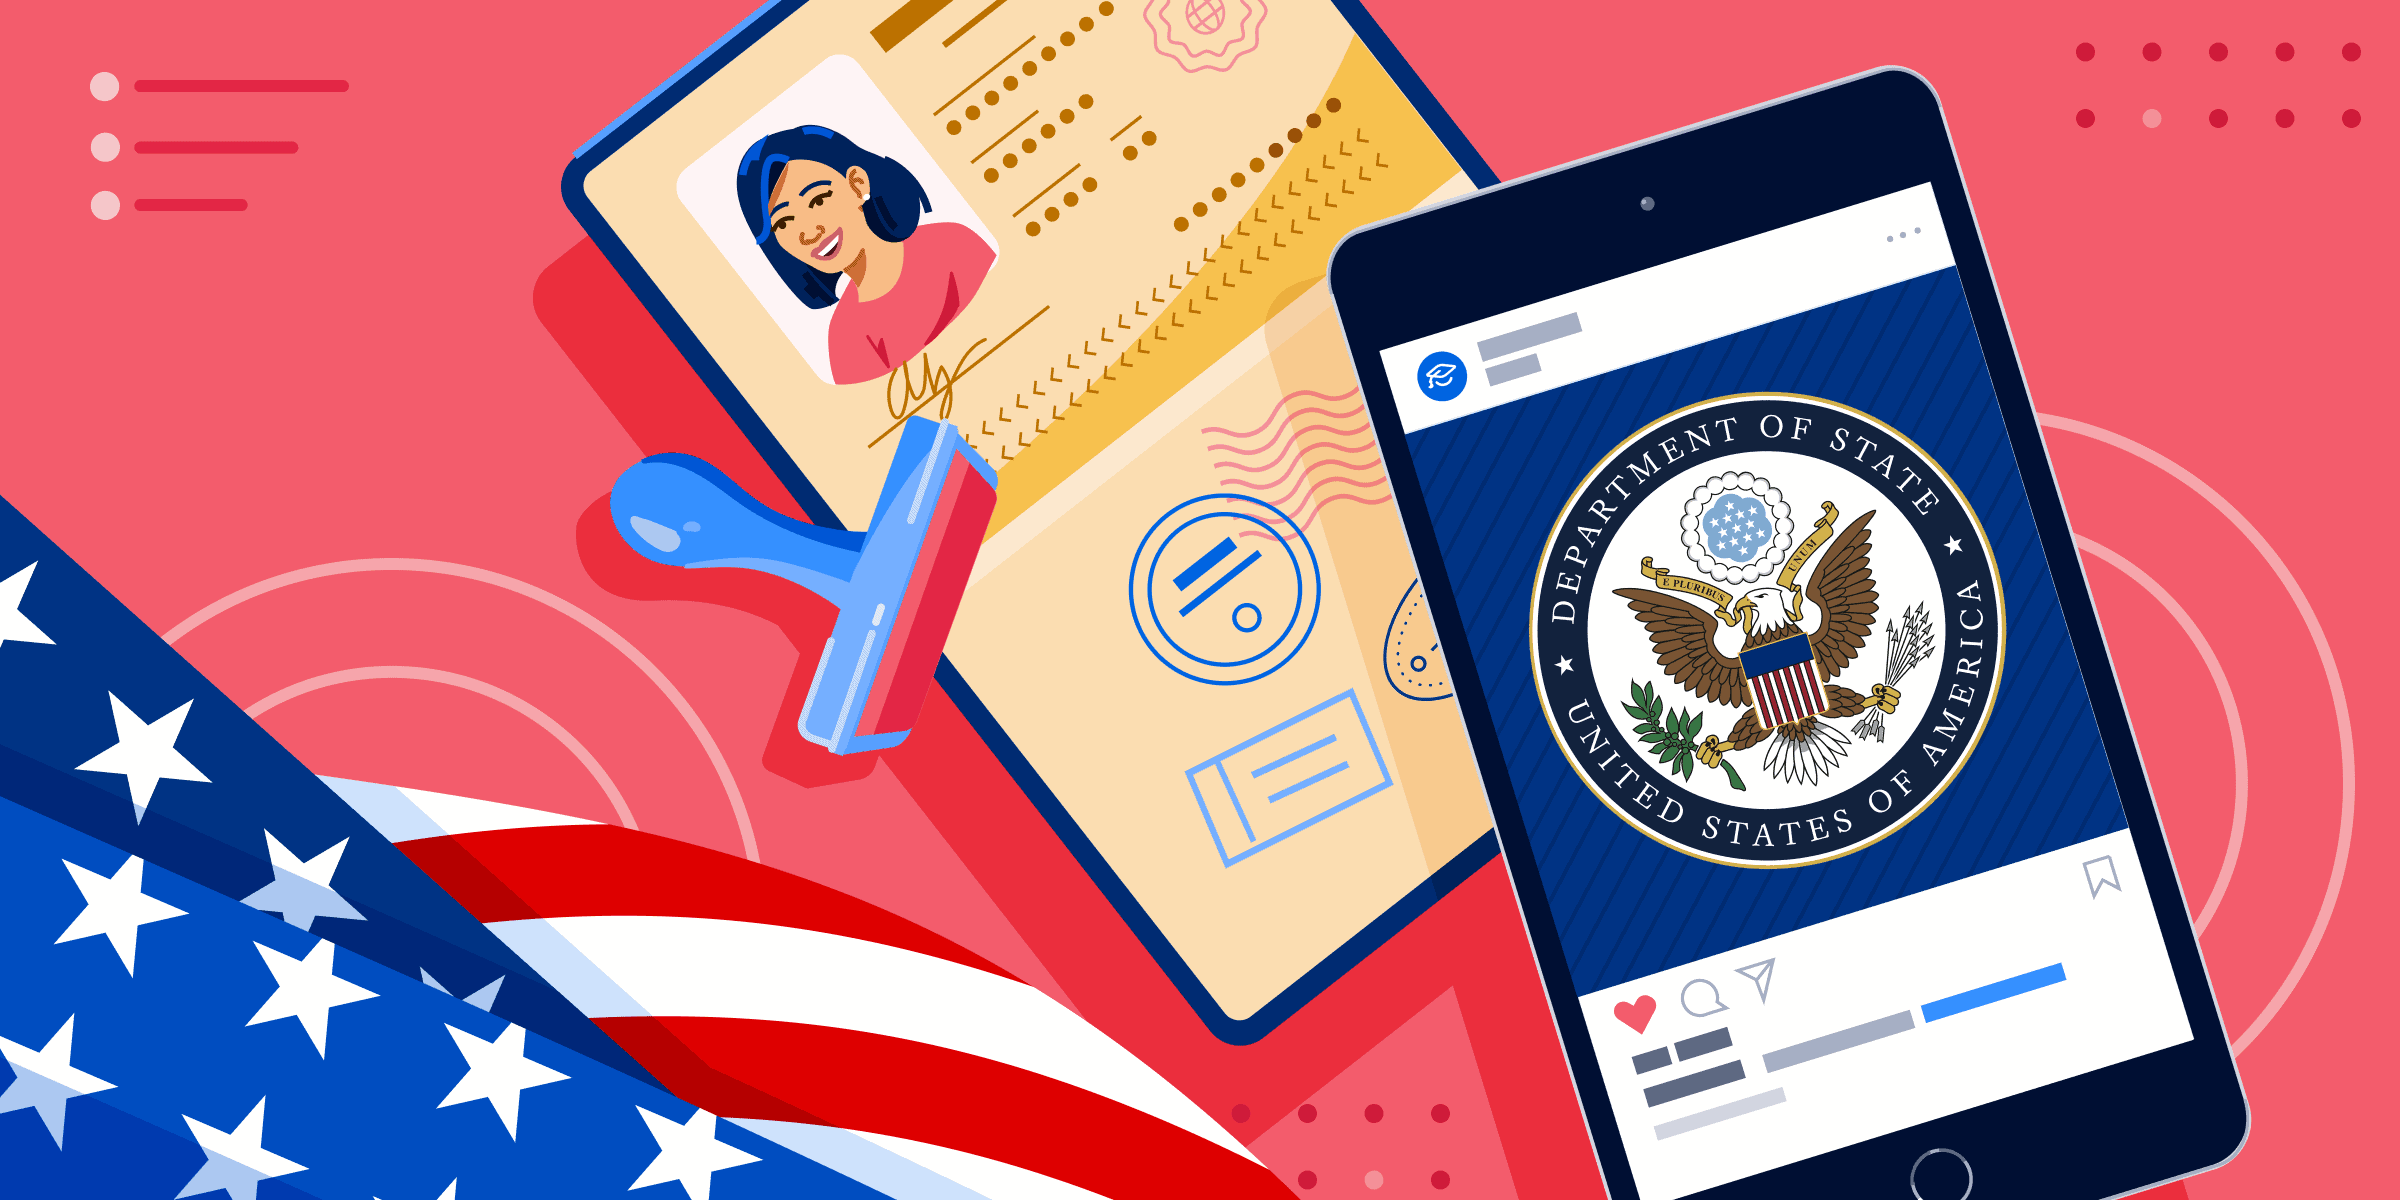 A passport, a passport stamp, a smartphone displaying the seal of the US Department of State, and a folded American flag.